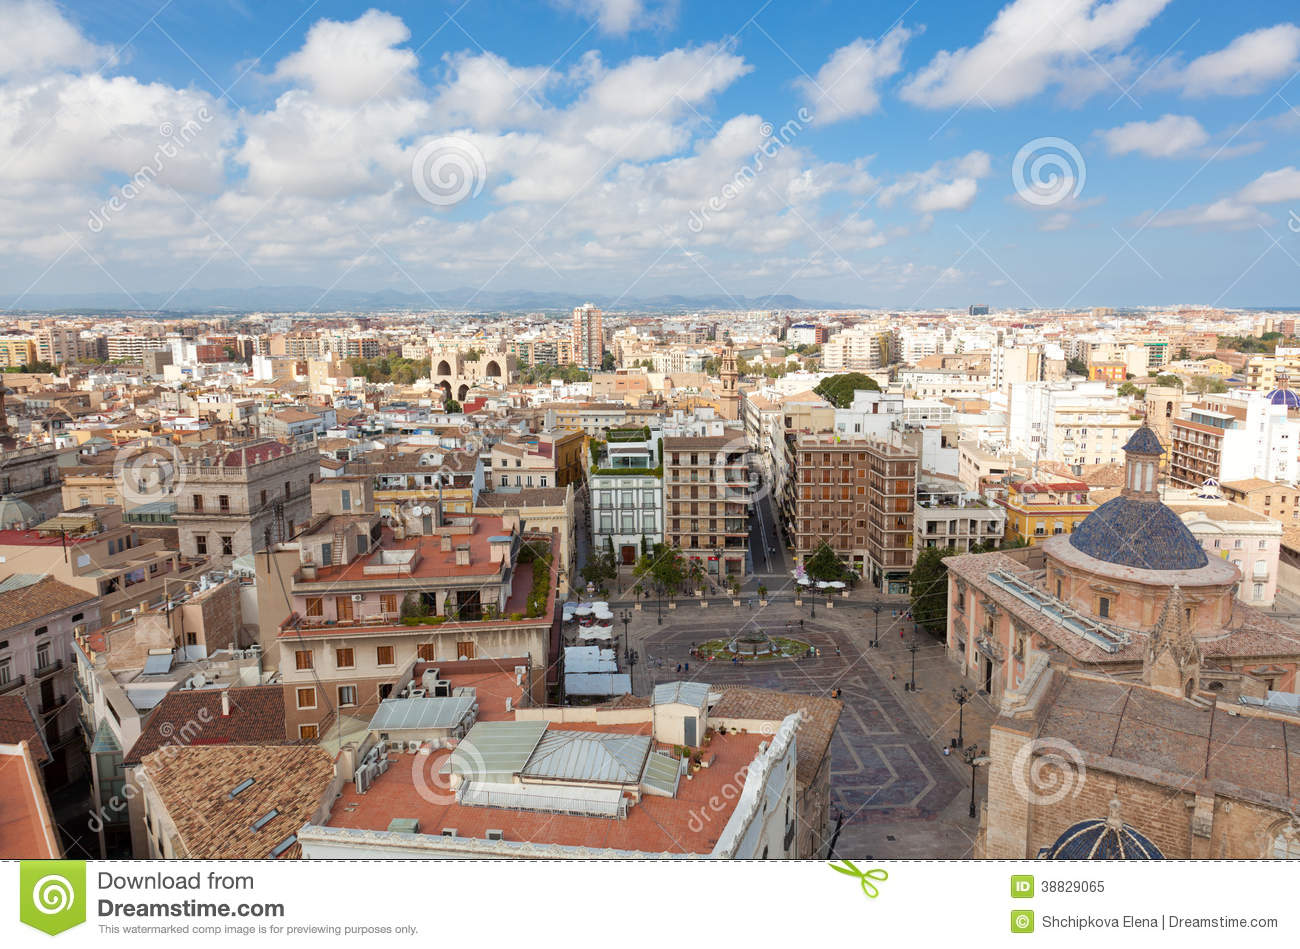 View of the historical center of Valencia, Spain.